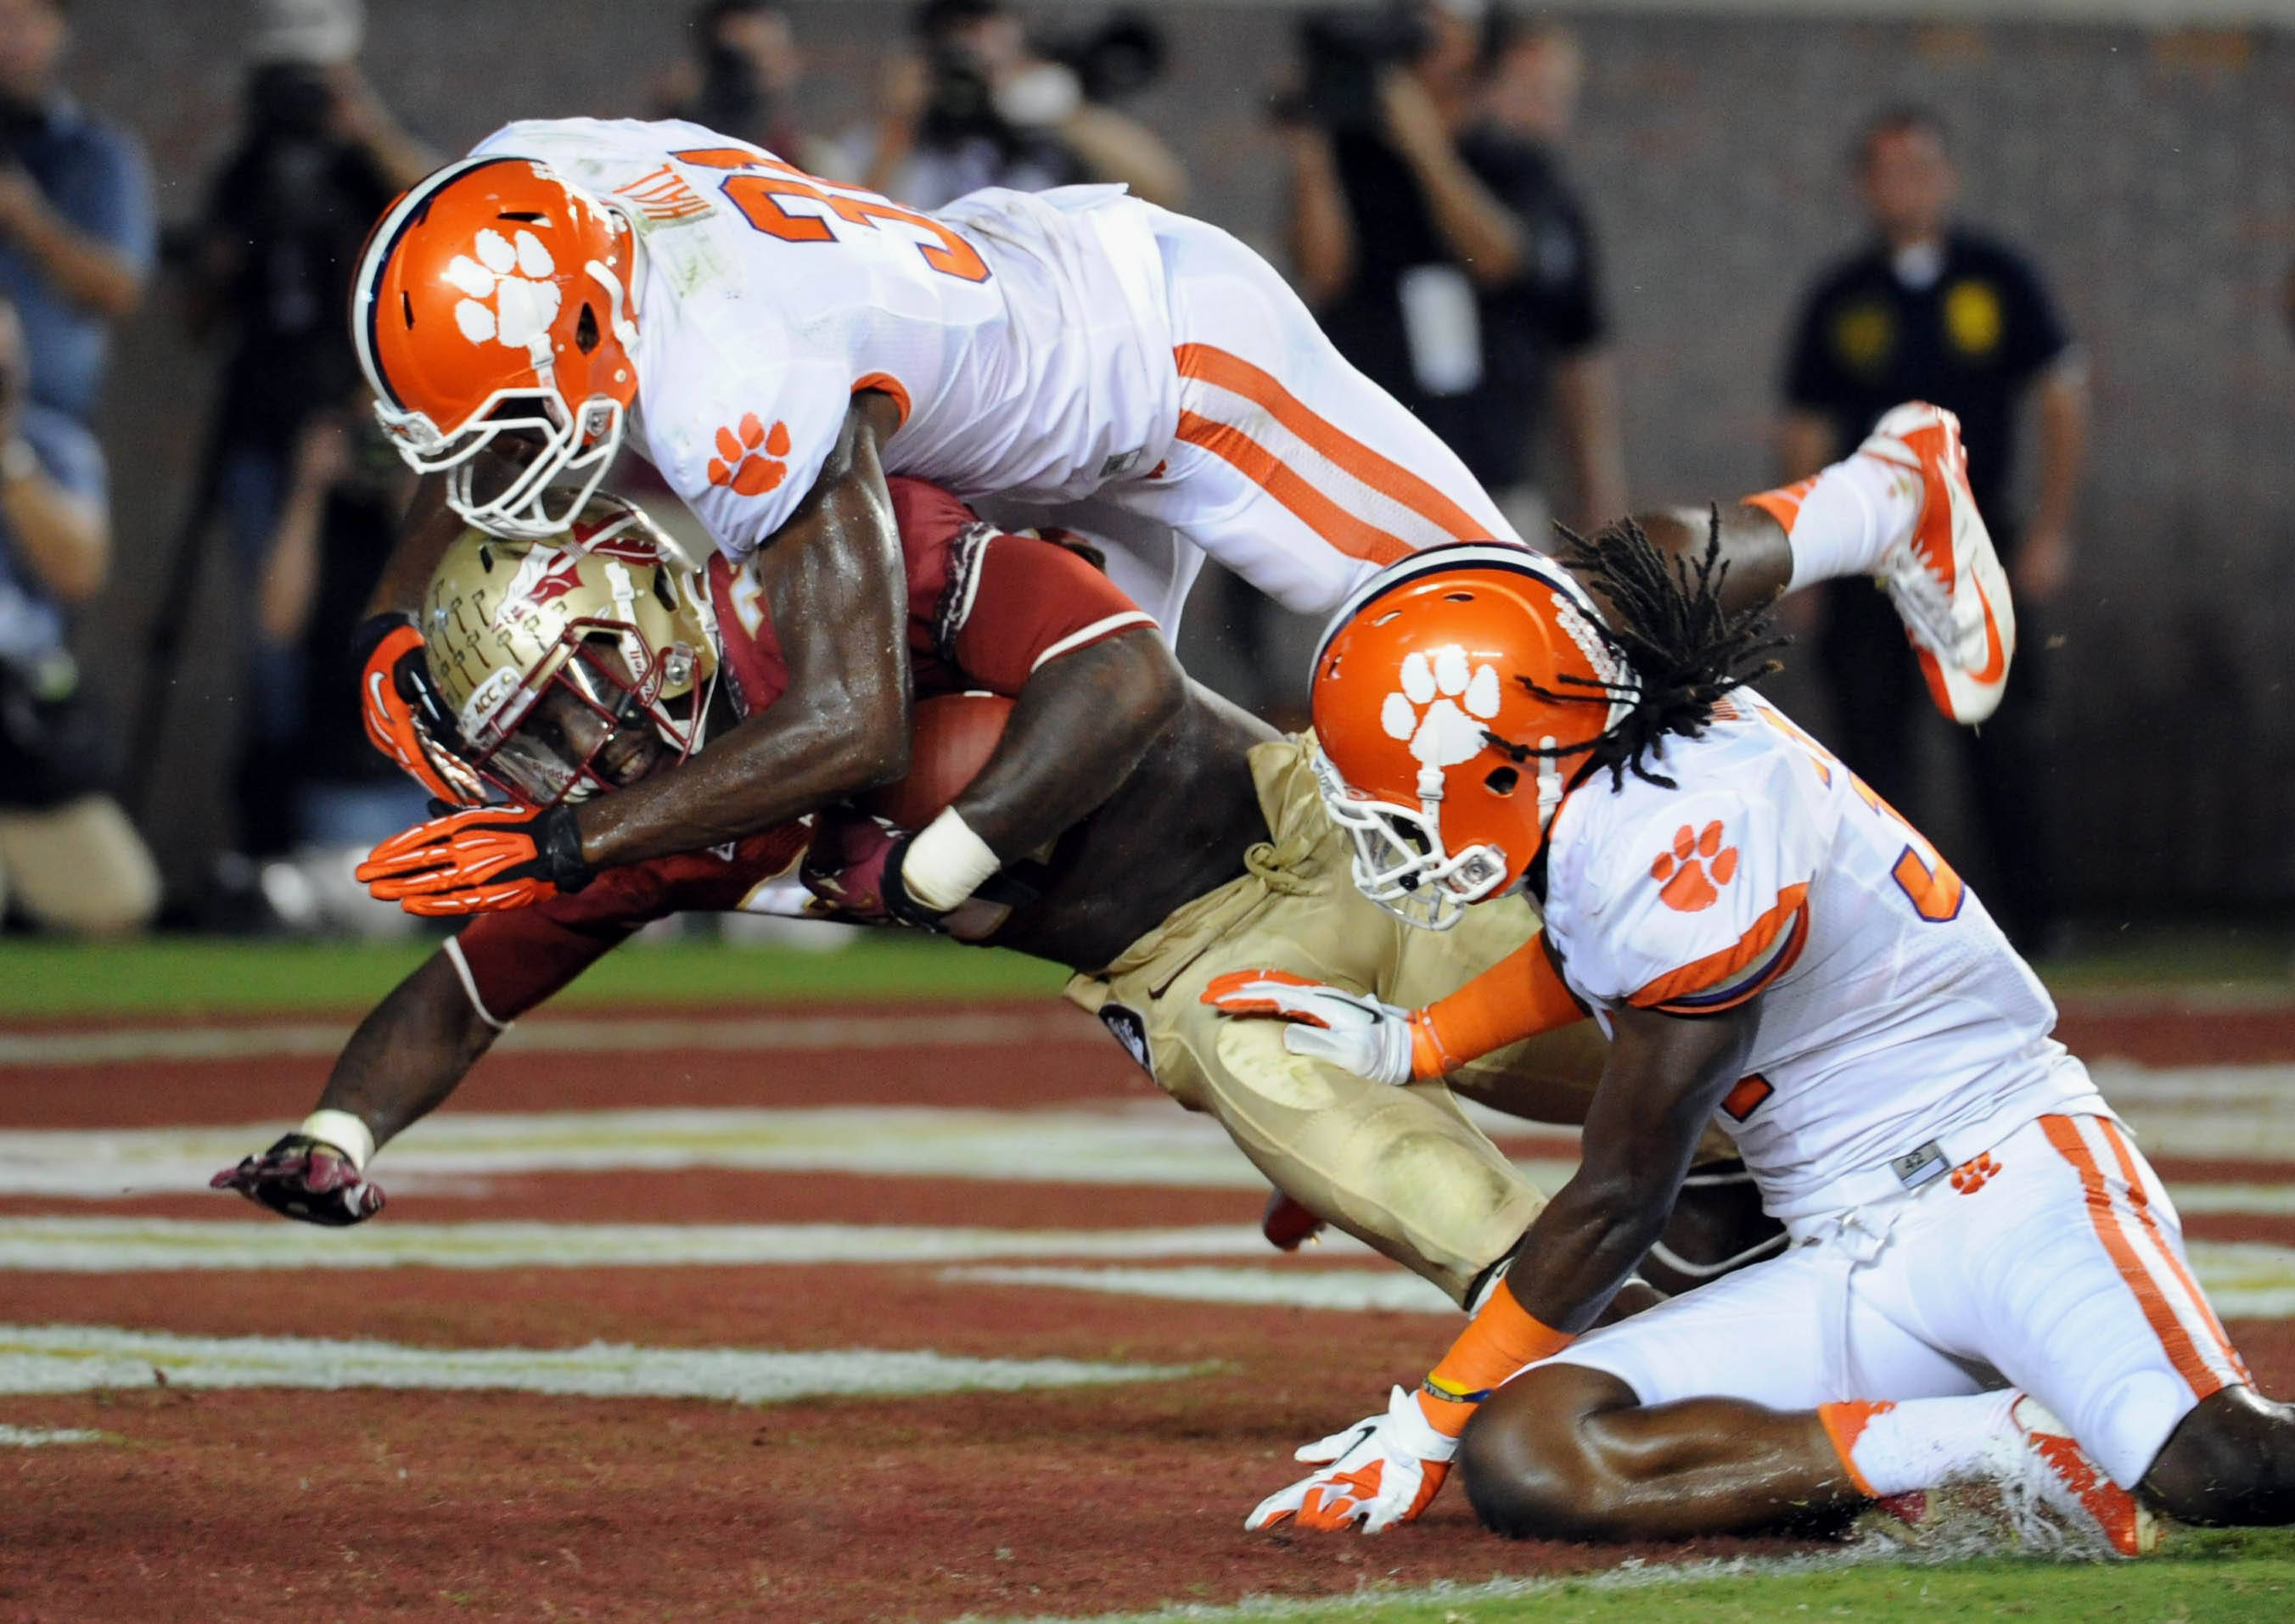 Sept 22, 2012;  Tallahassee, Florida, USA; Florida State Seminoles running back James Wilder Jr. (32) scores a touchdown past Clemson Tigers safety Rashard Hall (31) during the first half of the game at Doak Campbell Stadium. Mandatory Credit: Melina Vastola-USA TODAY Sports